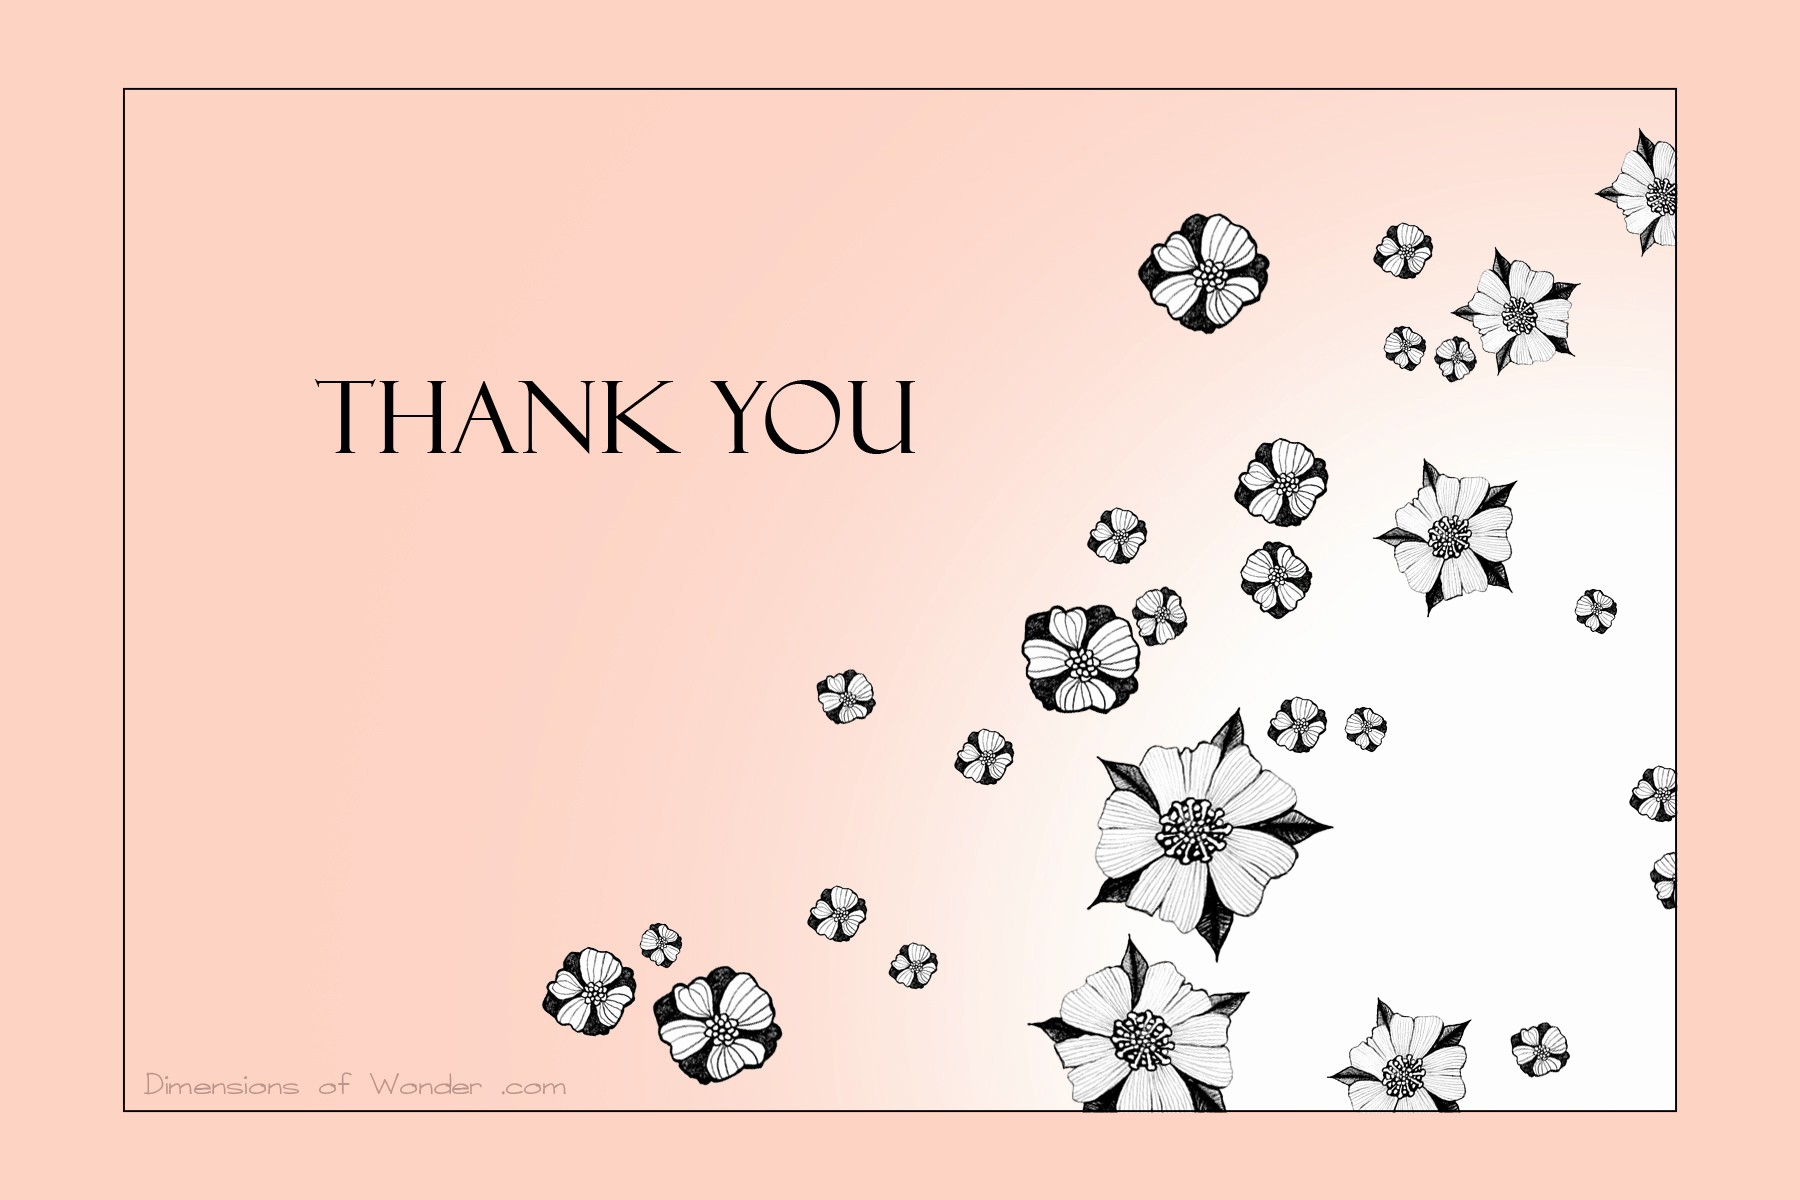 Words for Thank You Card Inspirational Thank You Card Template for Word Portablegasgrillweber